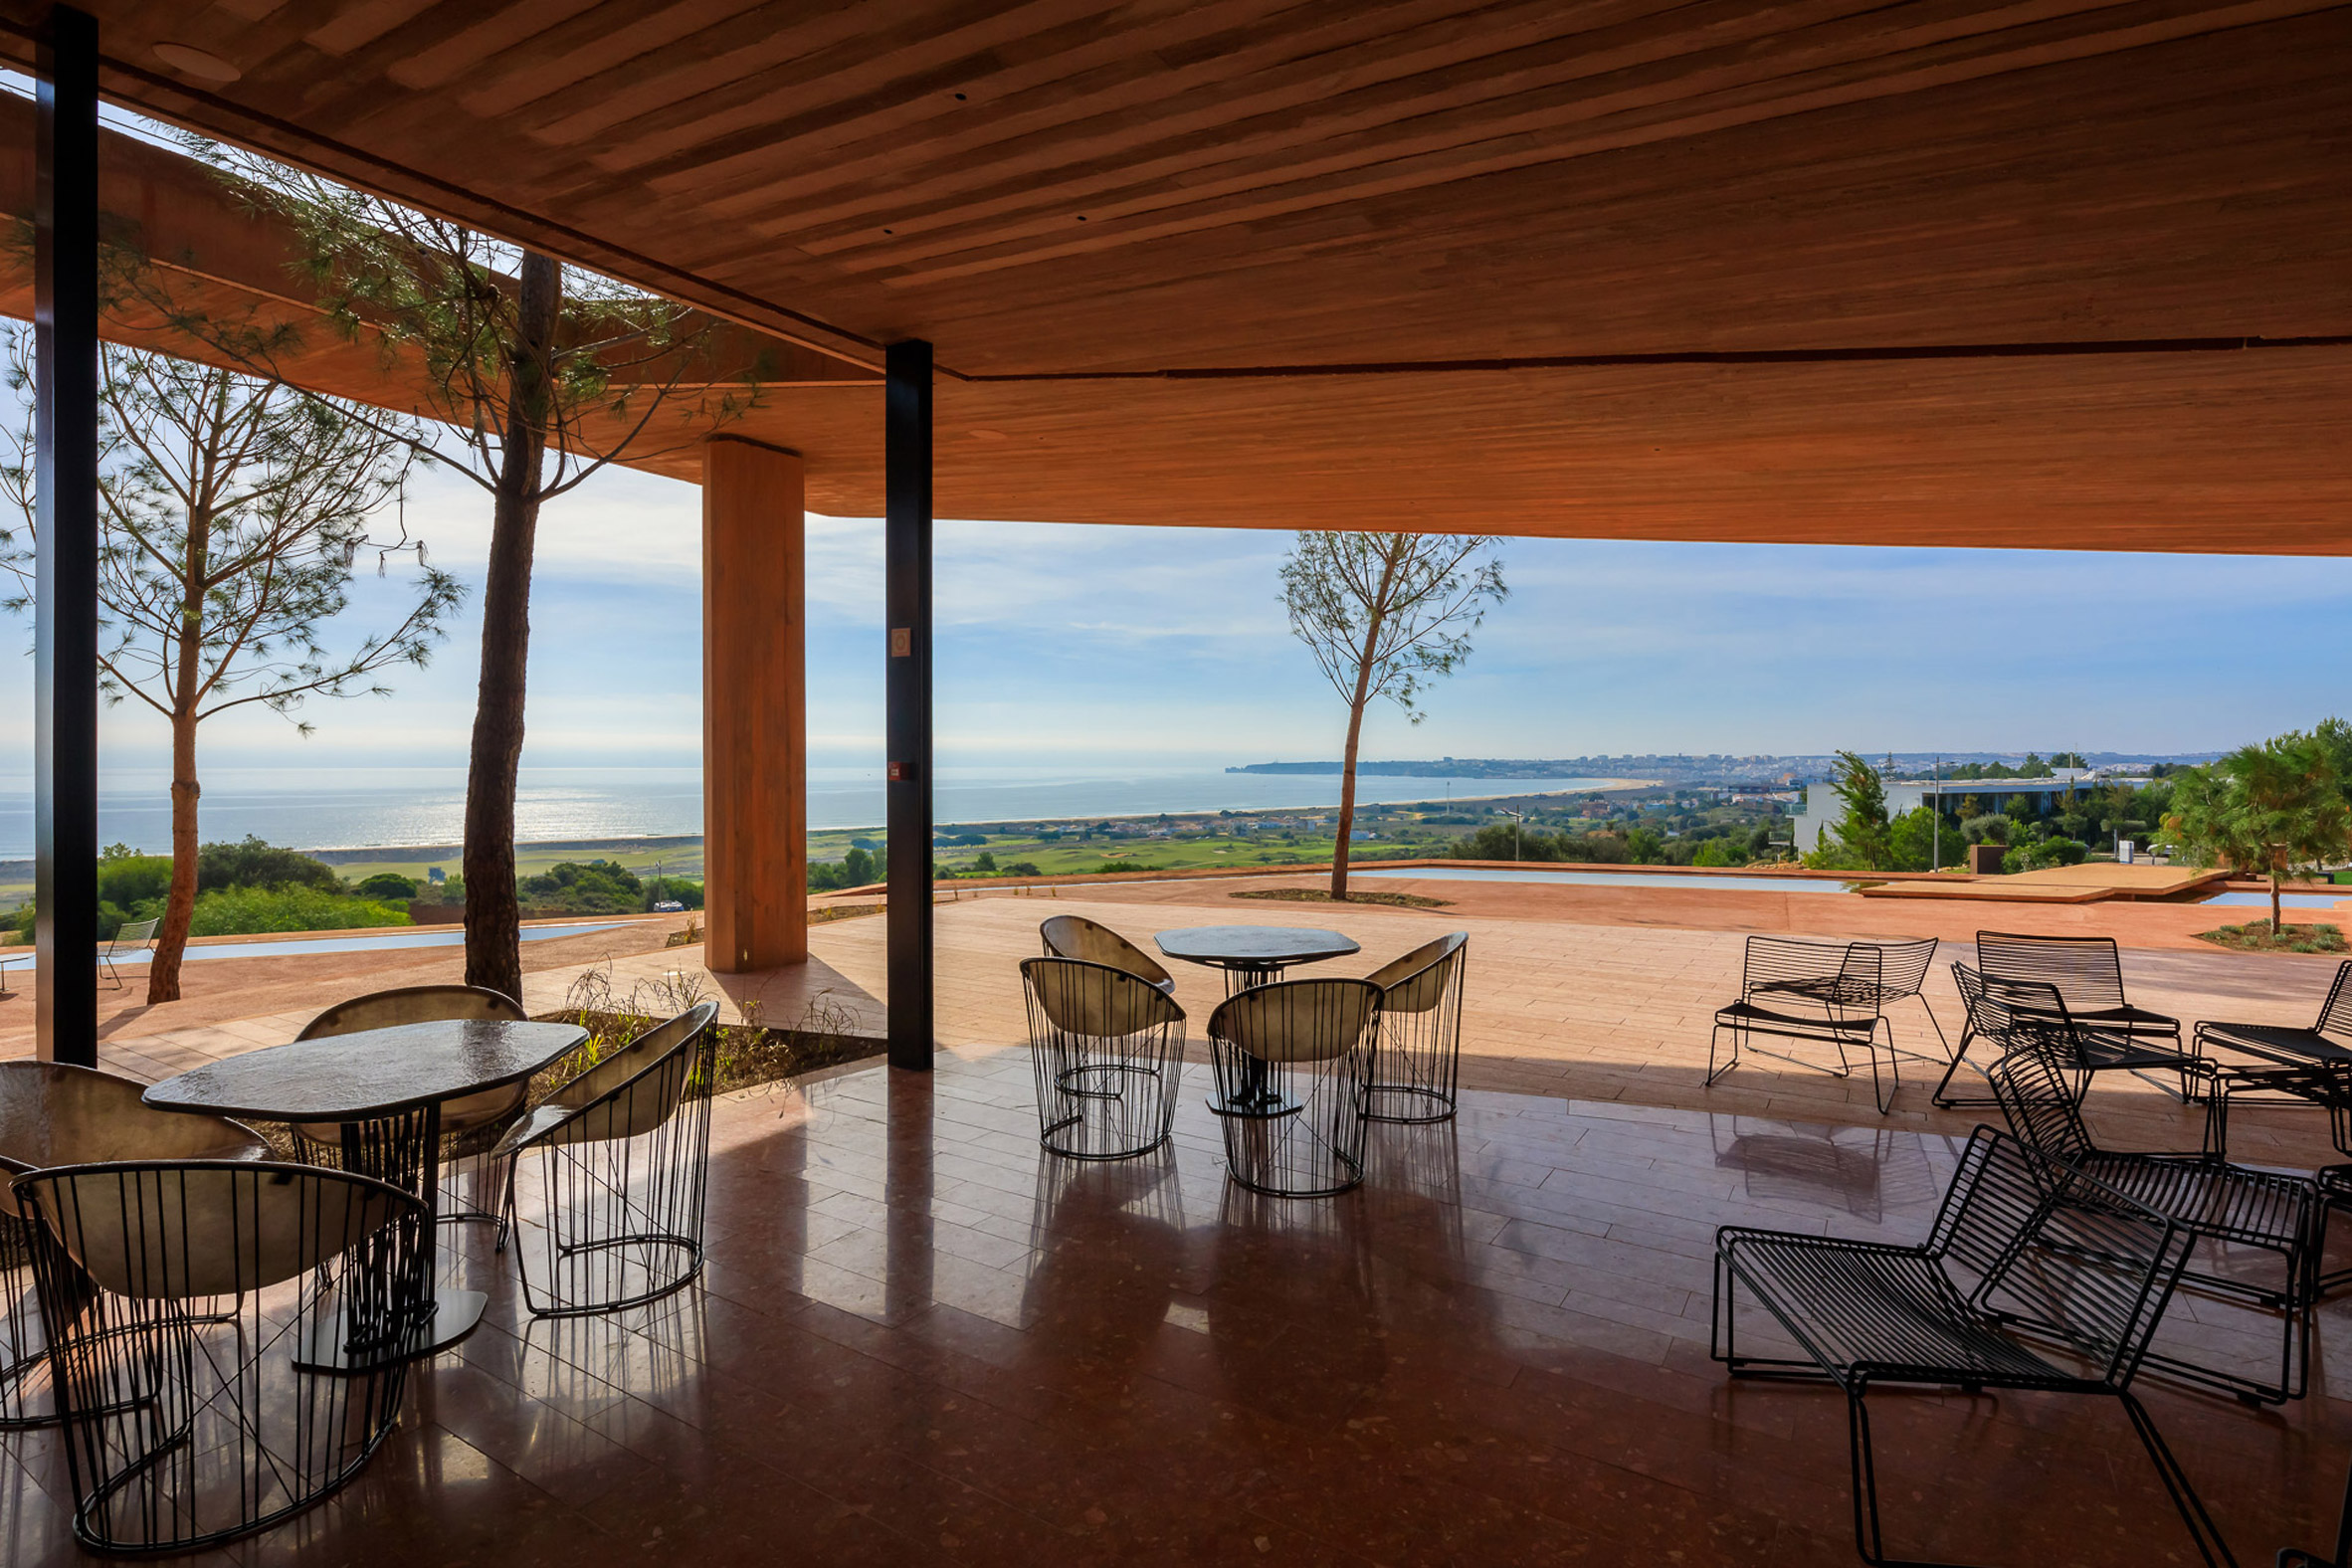 Furniture at Palmares Clubhouse by RCR Arquitectes